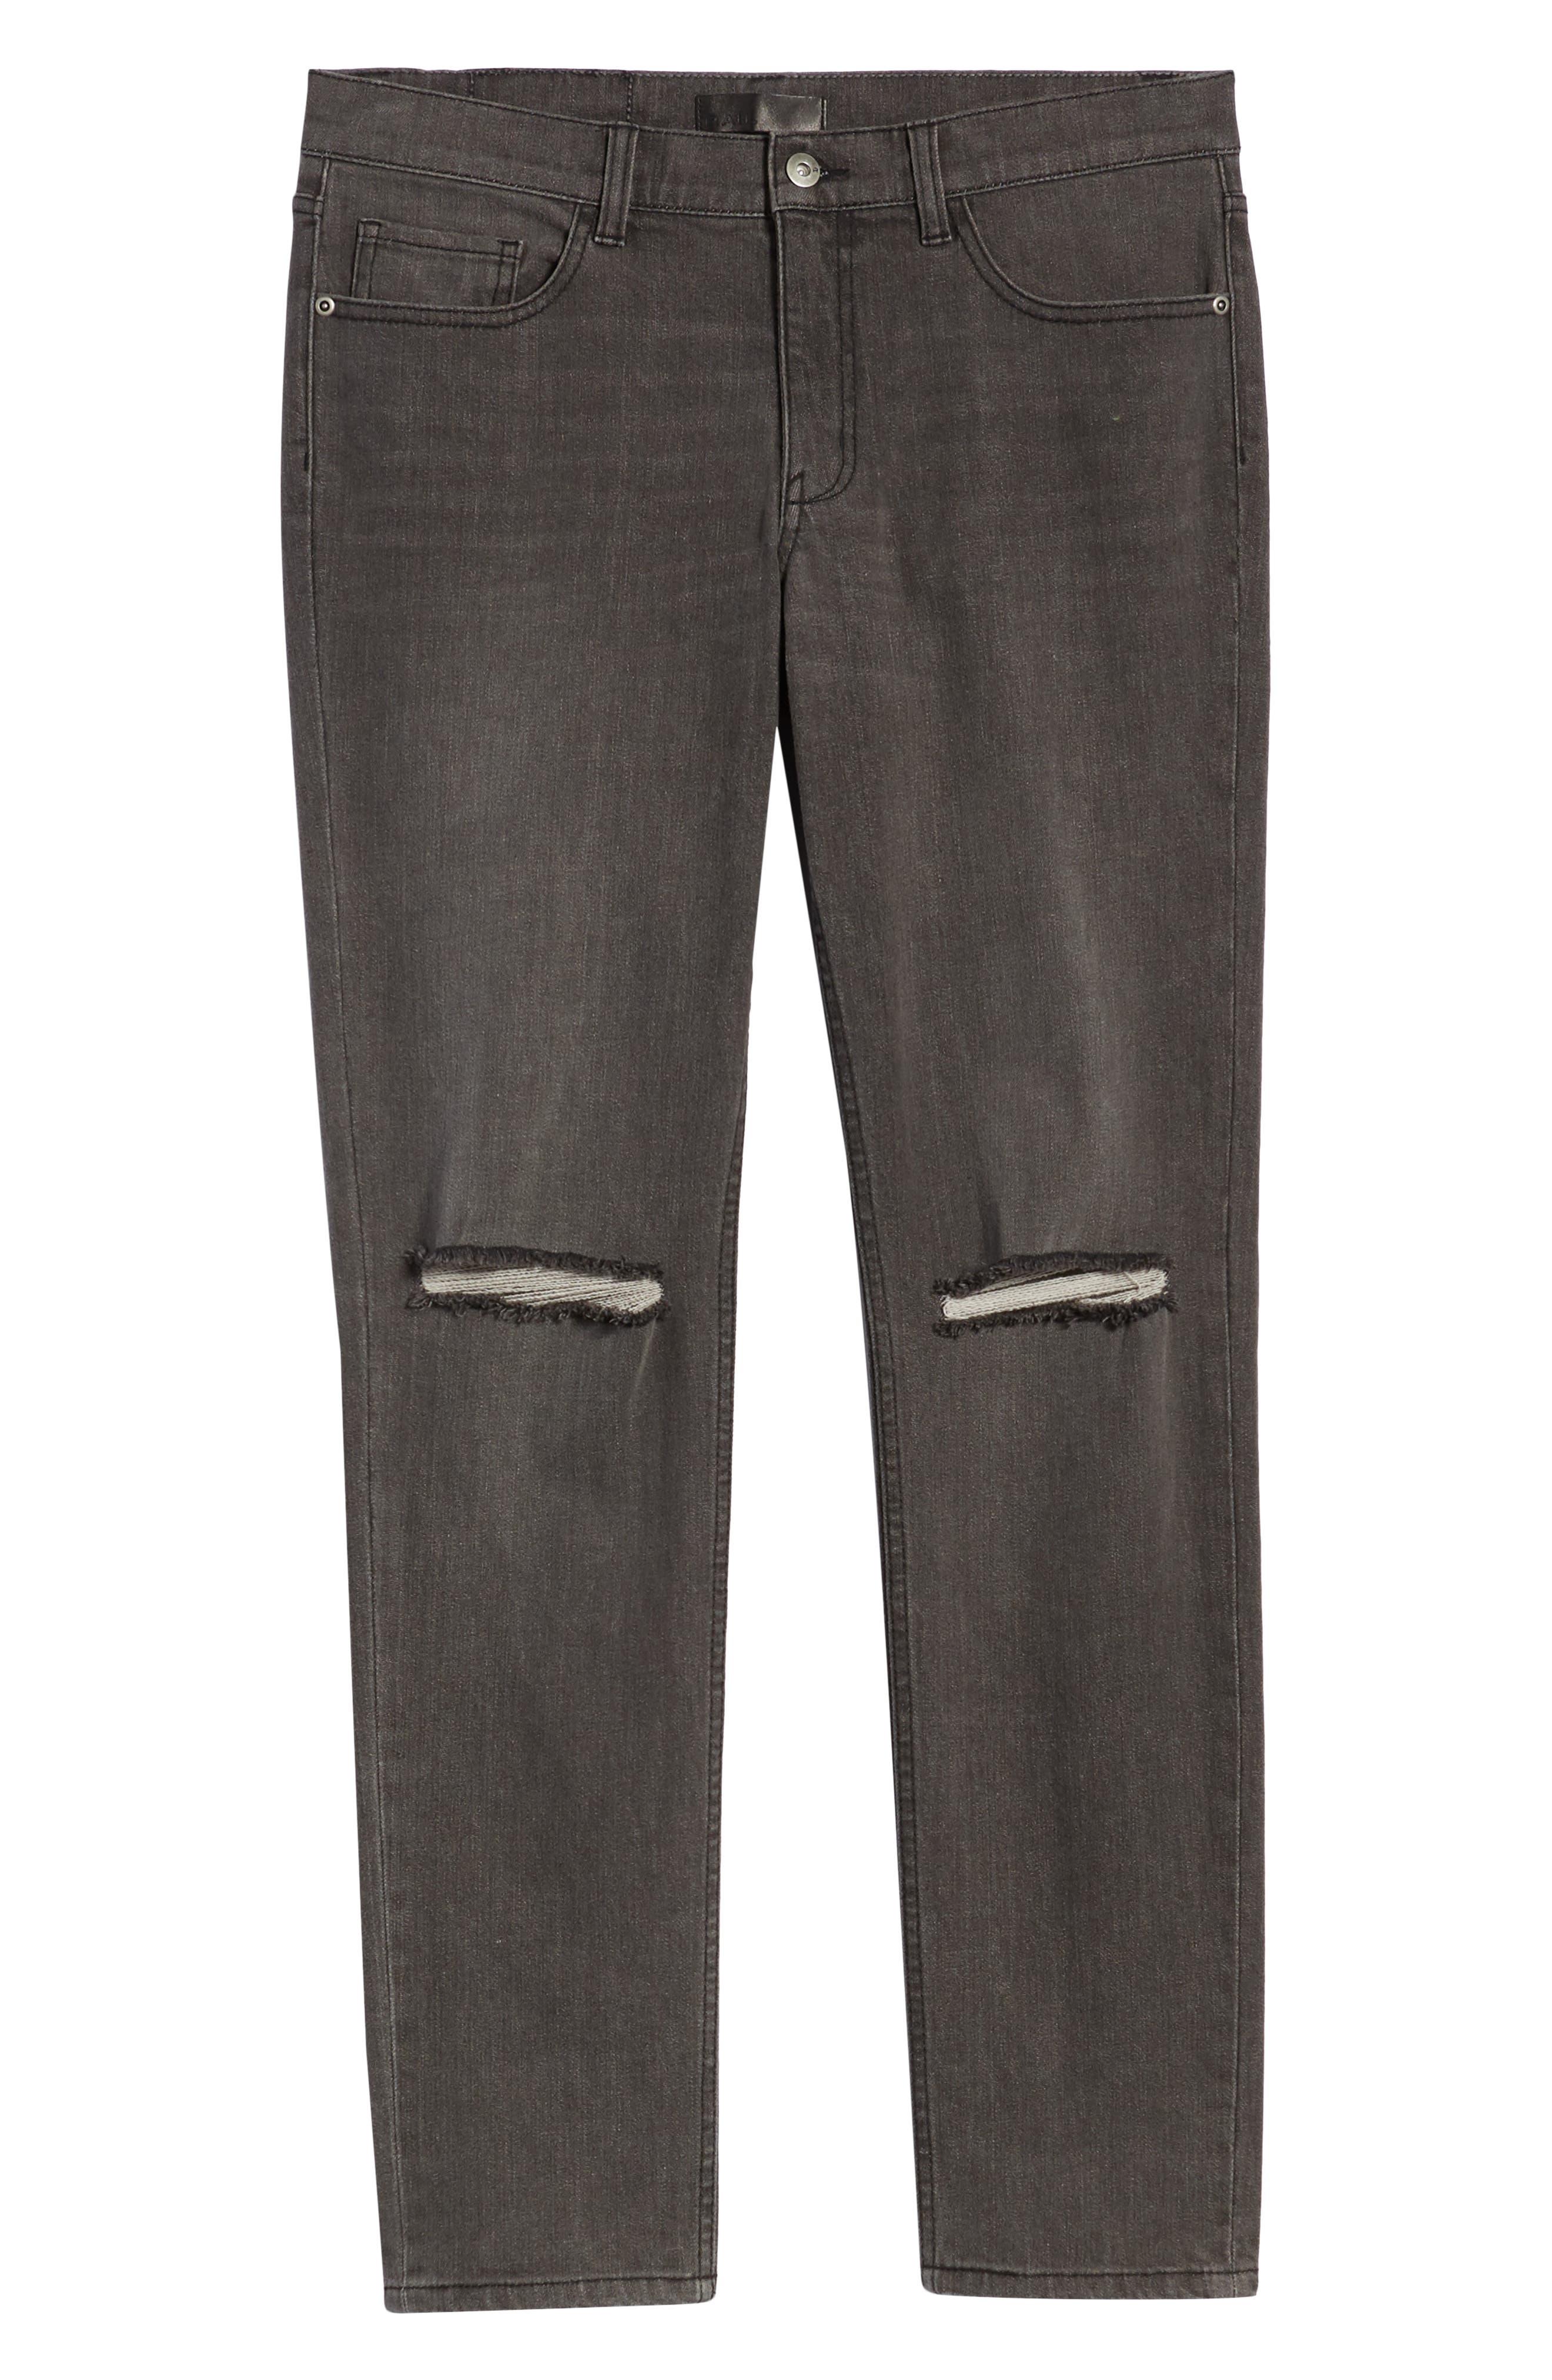 THE RAIL,                             Ripped Skinny Jeans,                             Alternate thumbnail 6, color,                             GREY CHRIS WASH